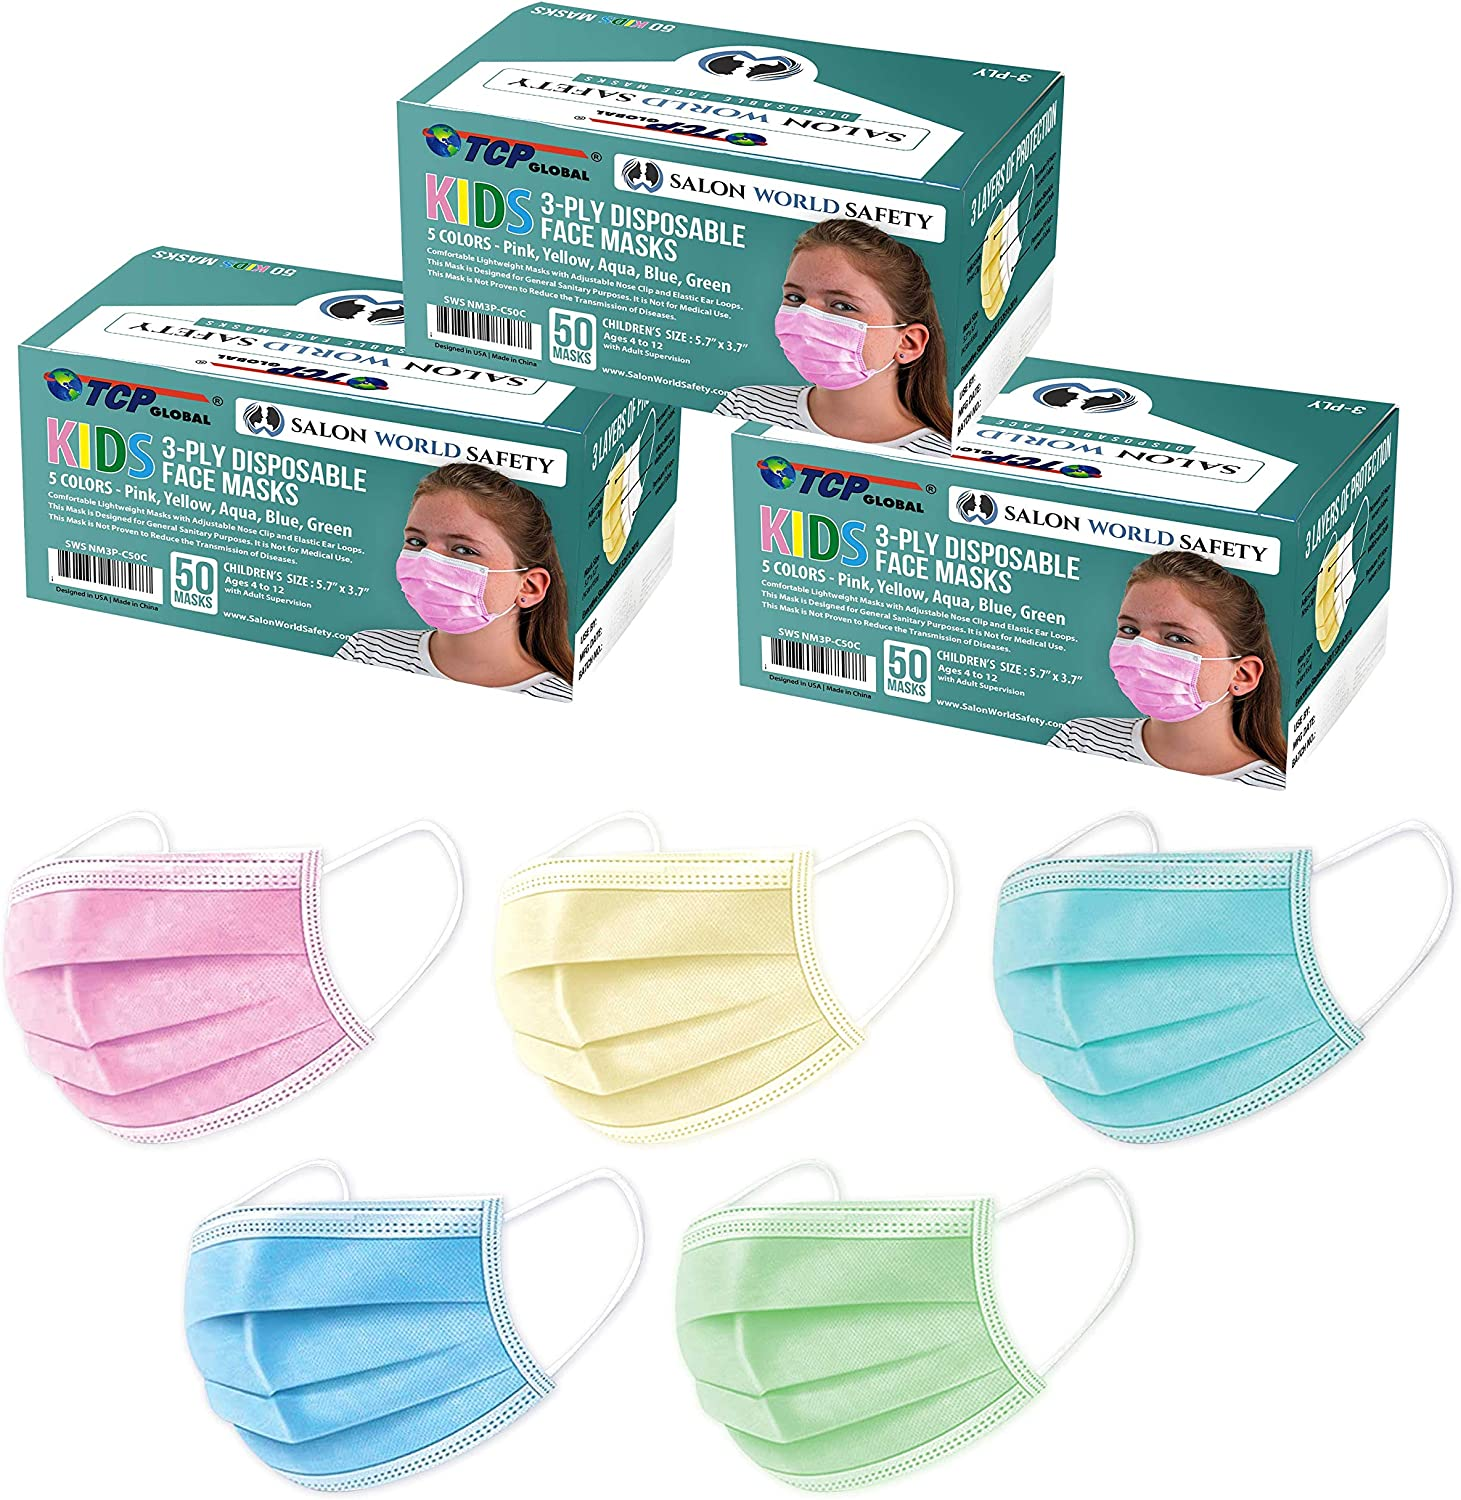 TCP Global Salon World Safety - Kids Face Masks 150 Pk 3-Ply Protective PPE (5 Colors, 30 Each) - -